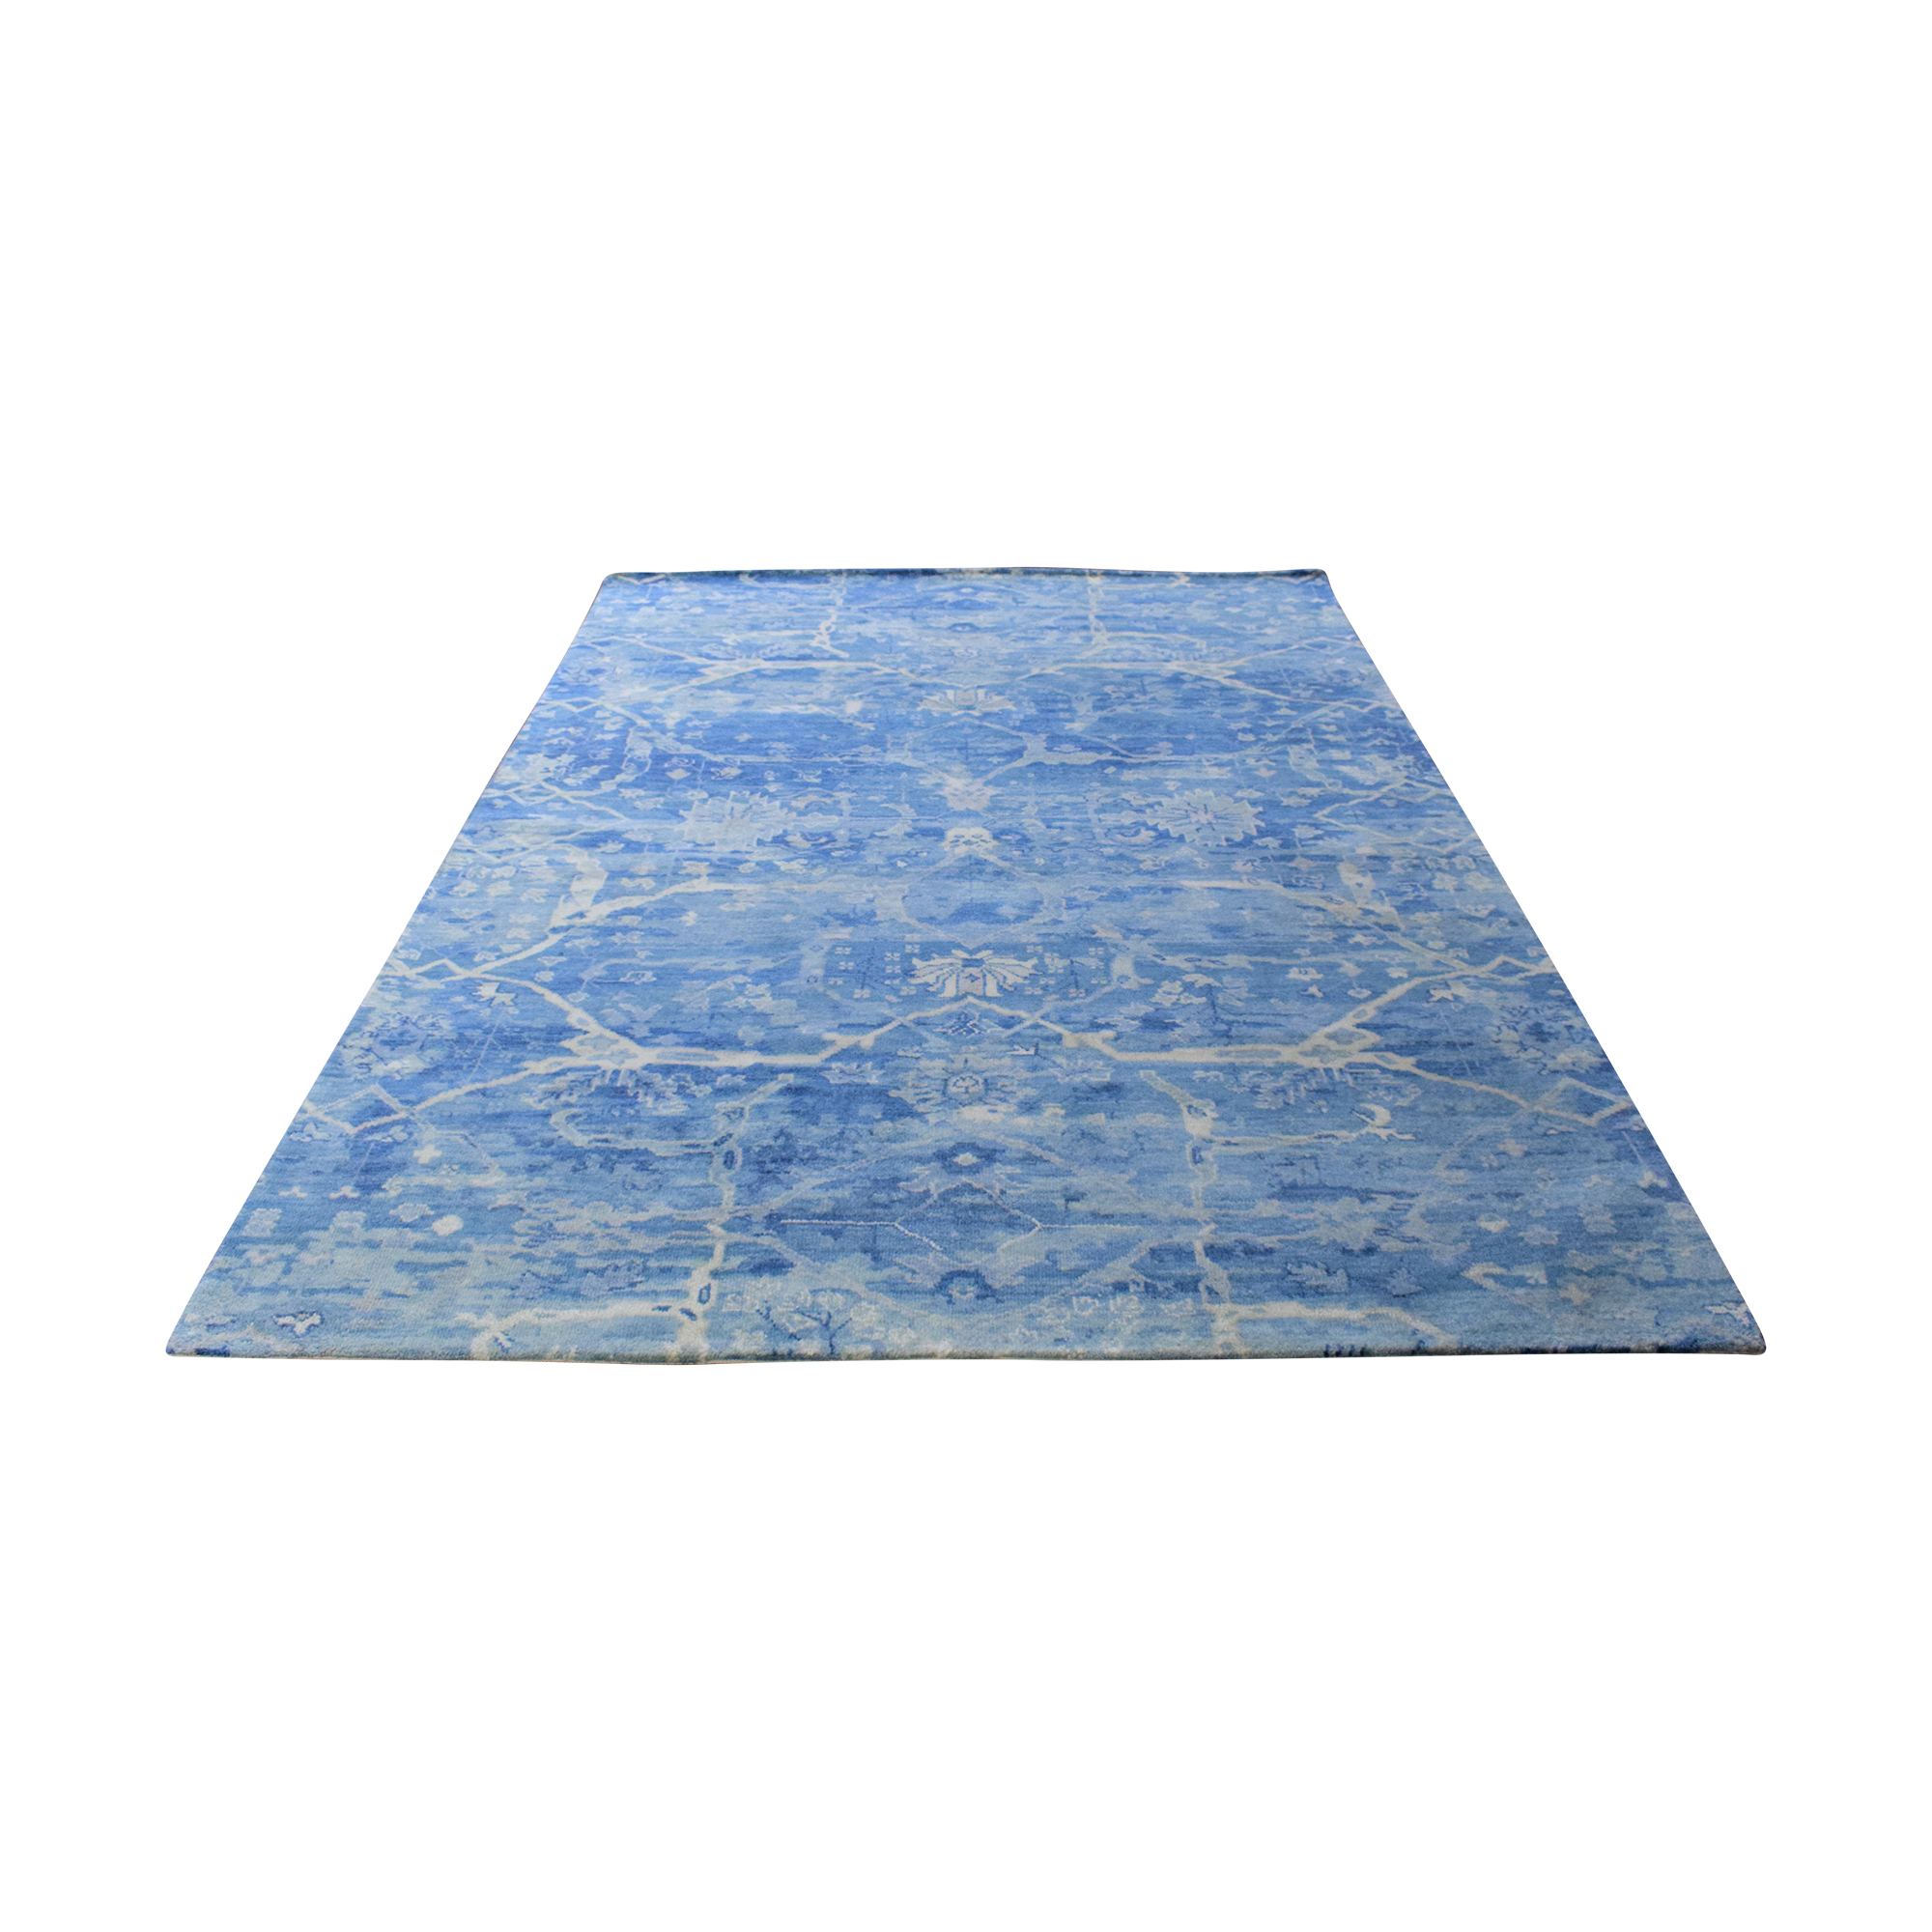 Serena & Lily Serena & Lily Amelia Hand-Knotted Rug for sale